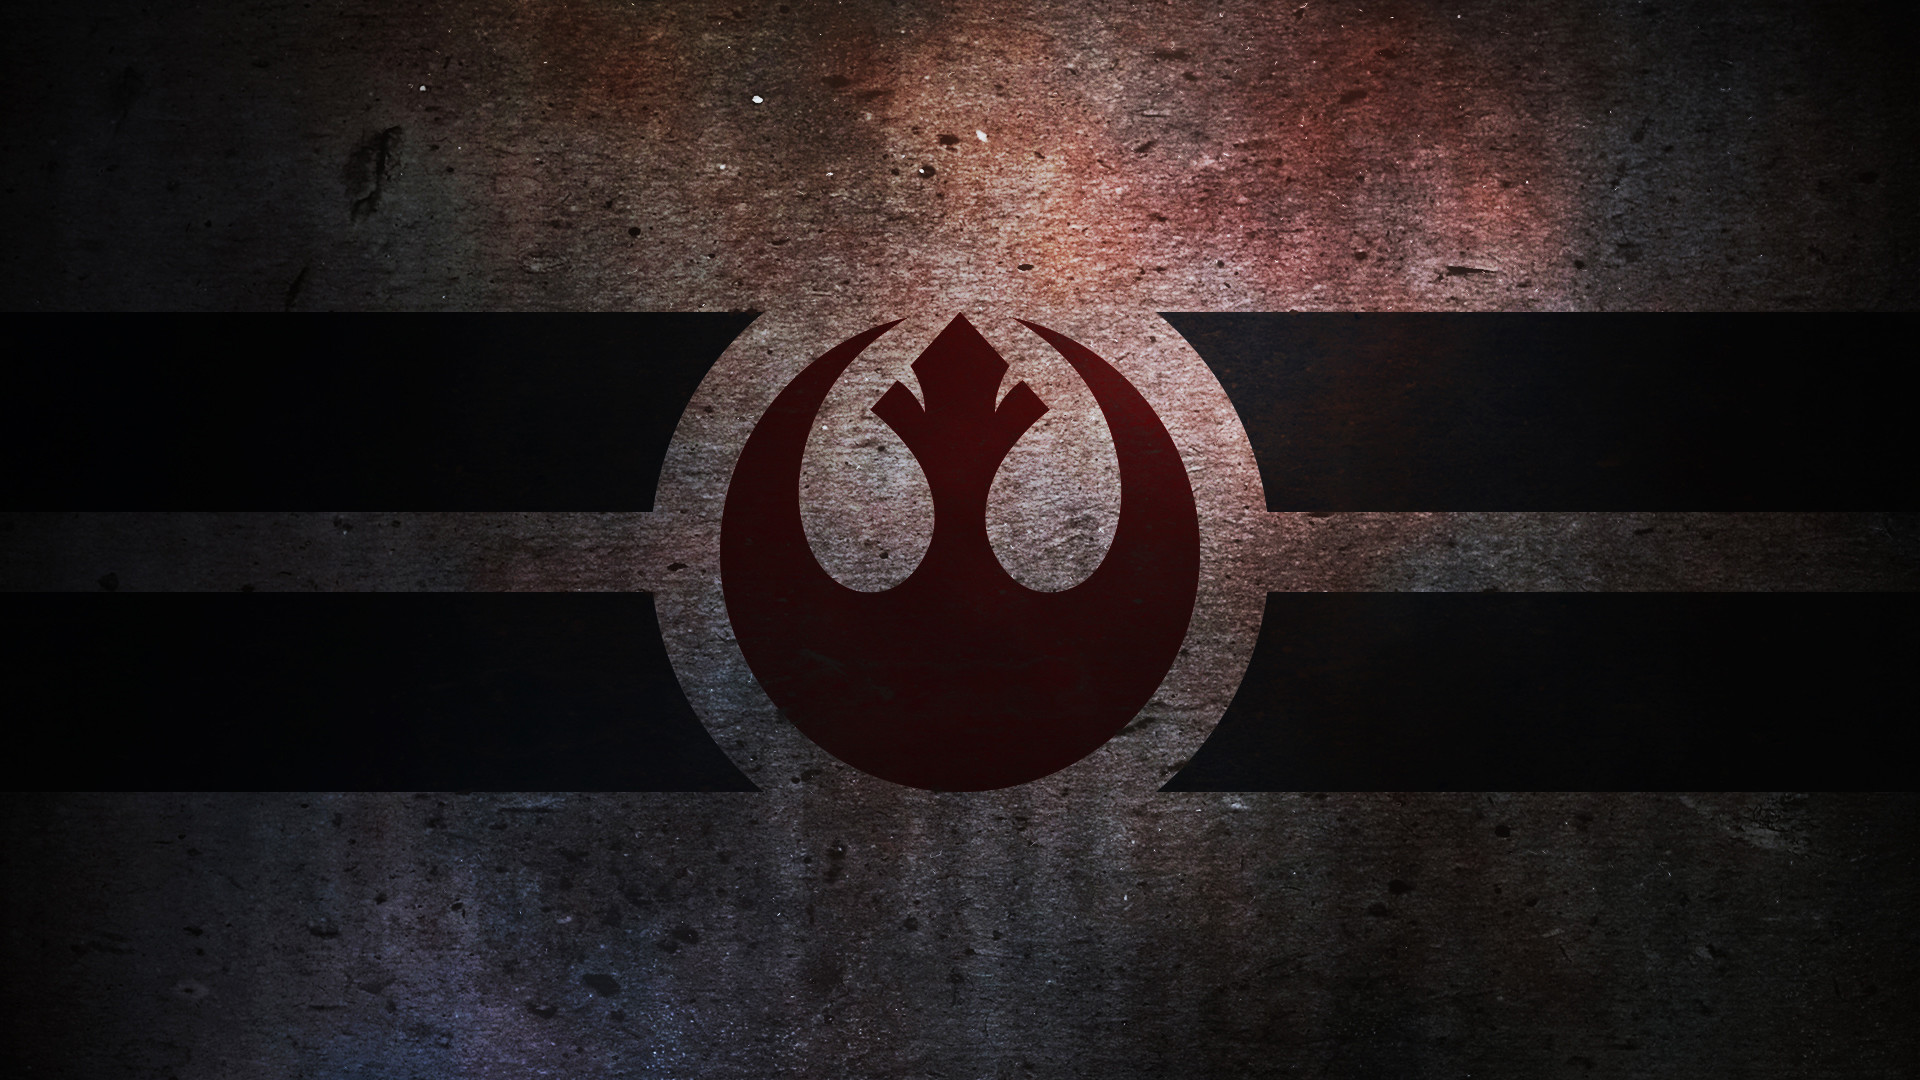 … fiction wallpaper hd star wars jedi wallpapers for iphone at …